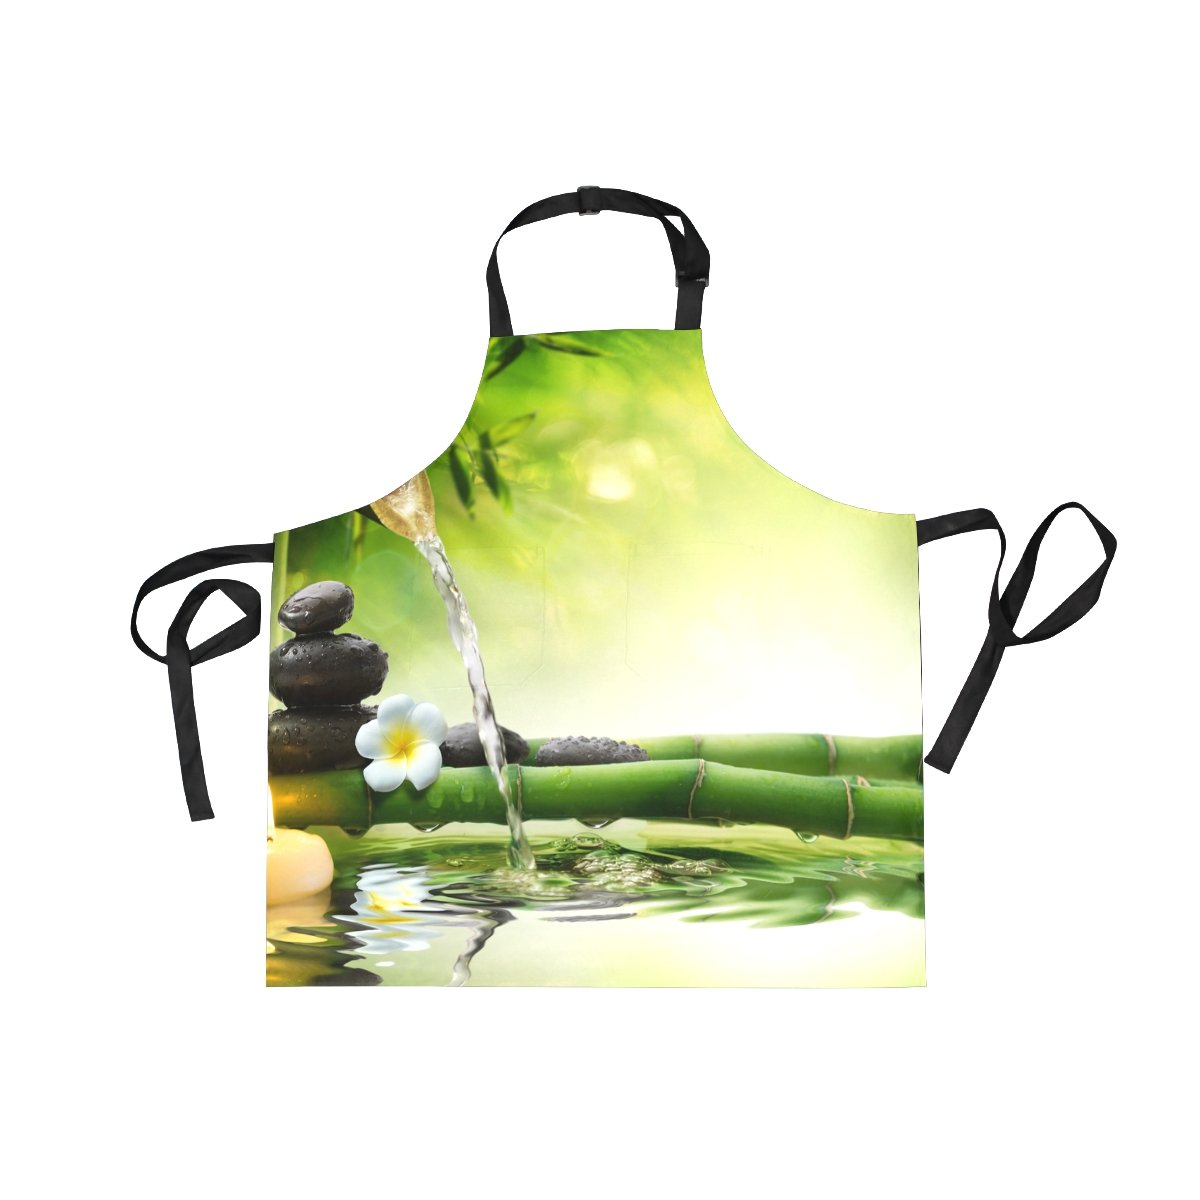 LORVIES Spa Stones Apron Unisex Kitchen Bib Apron with 2 Pockets Adjustable Neck for Cooking Baking Gardening for Women Men Chef